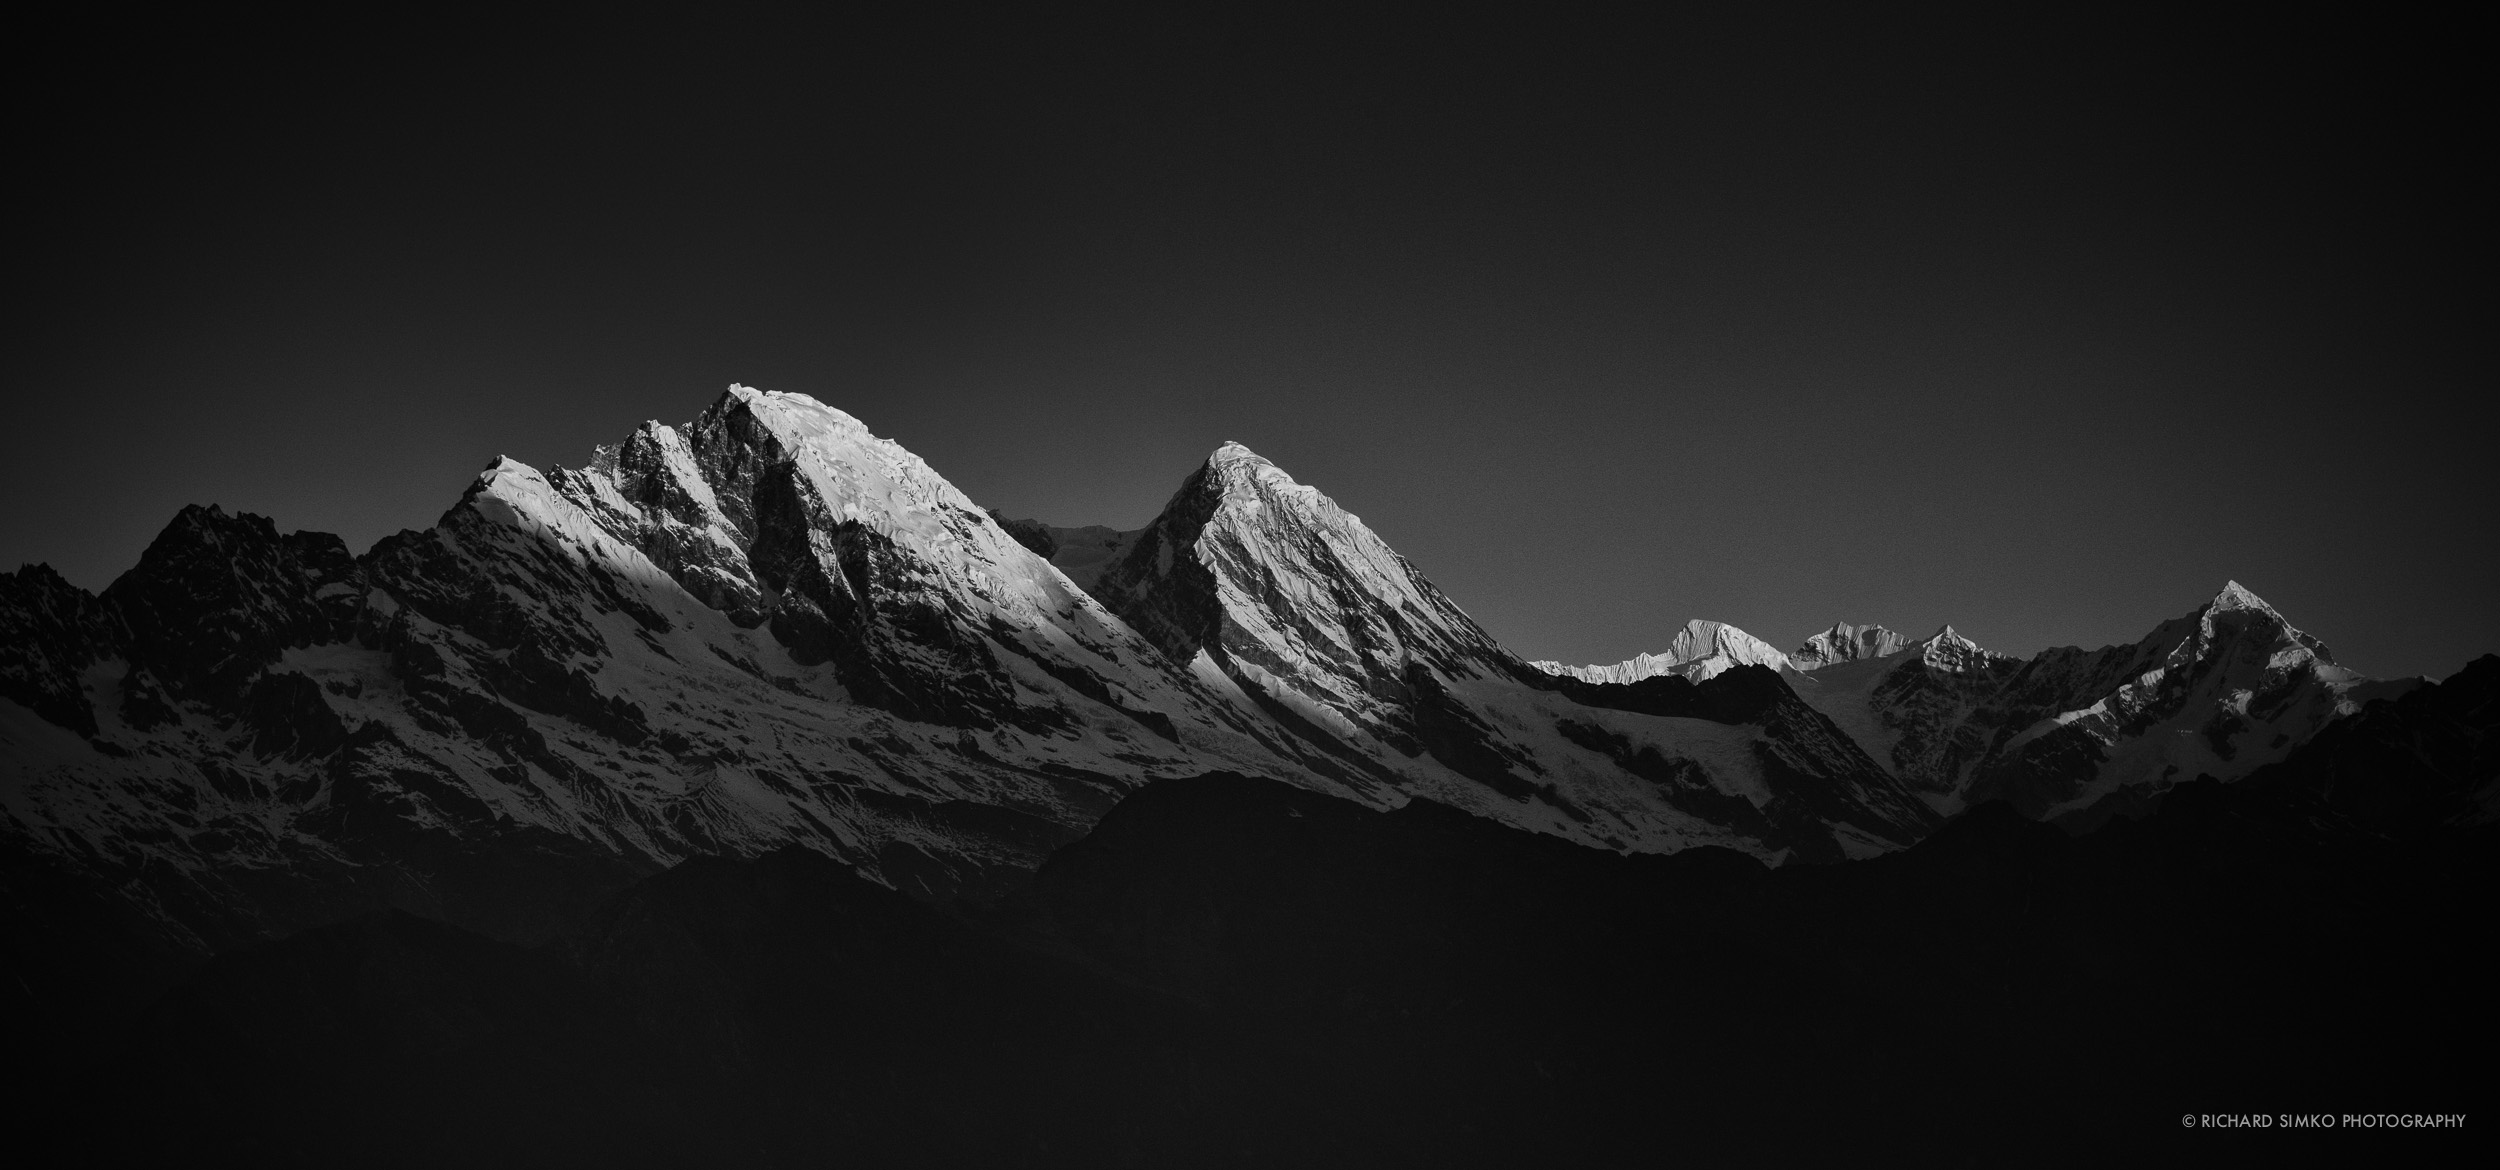 Sunrise in Himalayas is always spectacular. Peaks are hit by first morning sun rays as viewed from Chutanga.